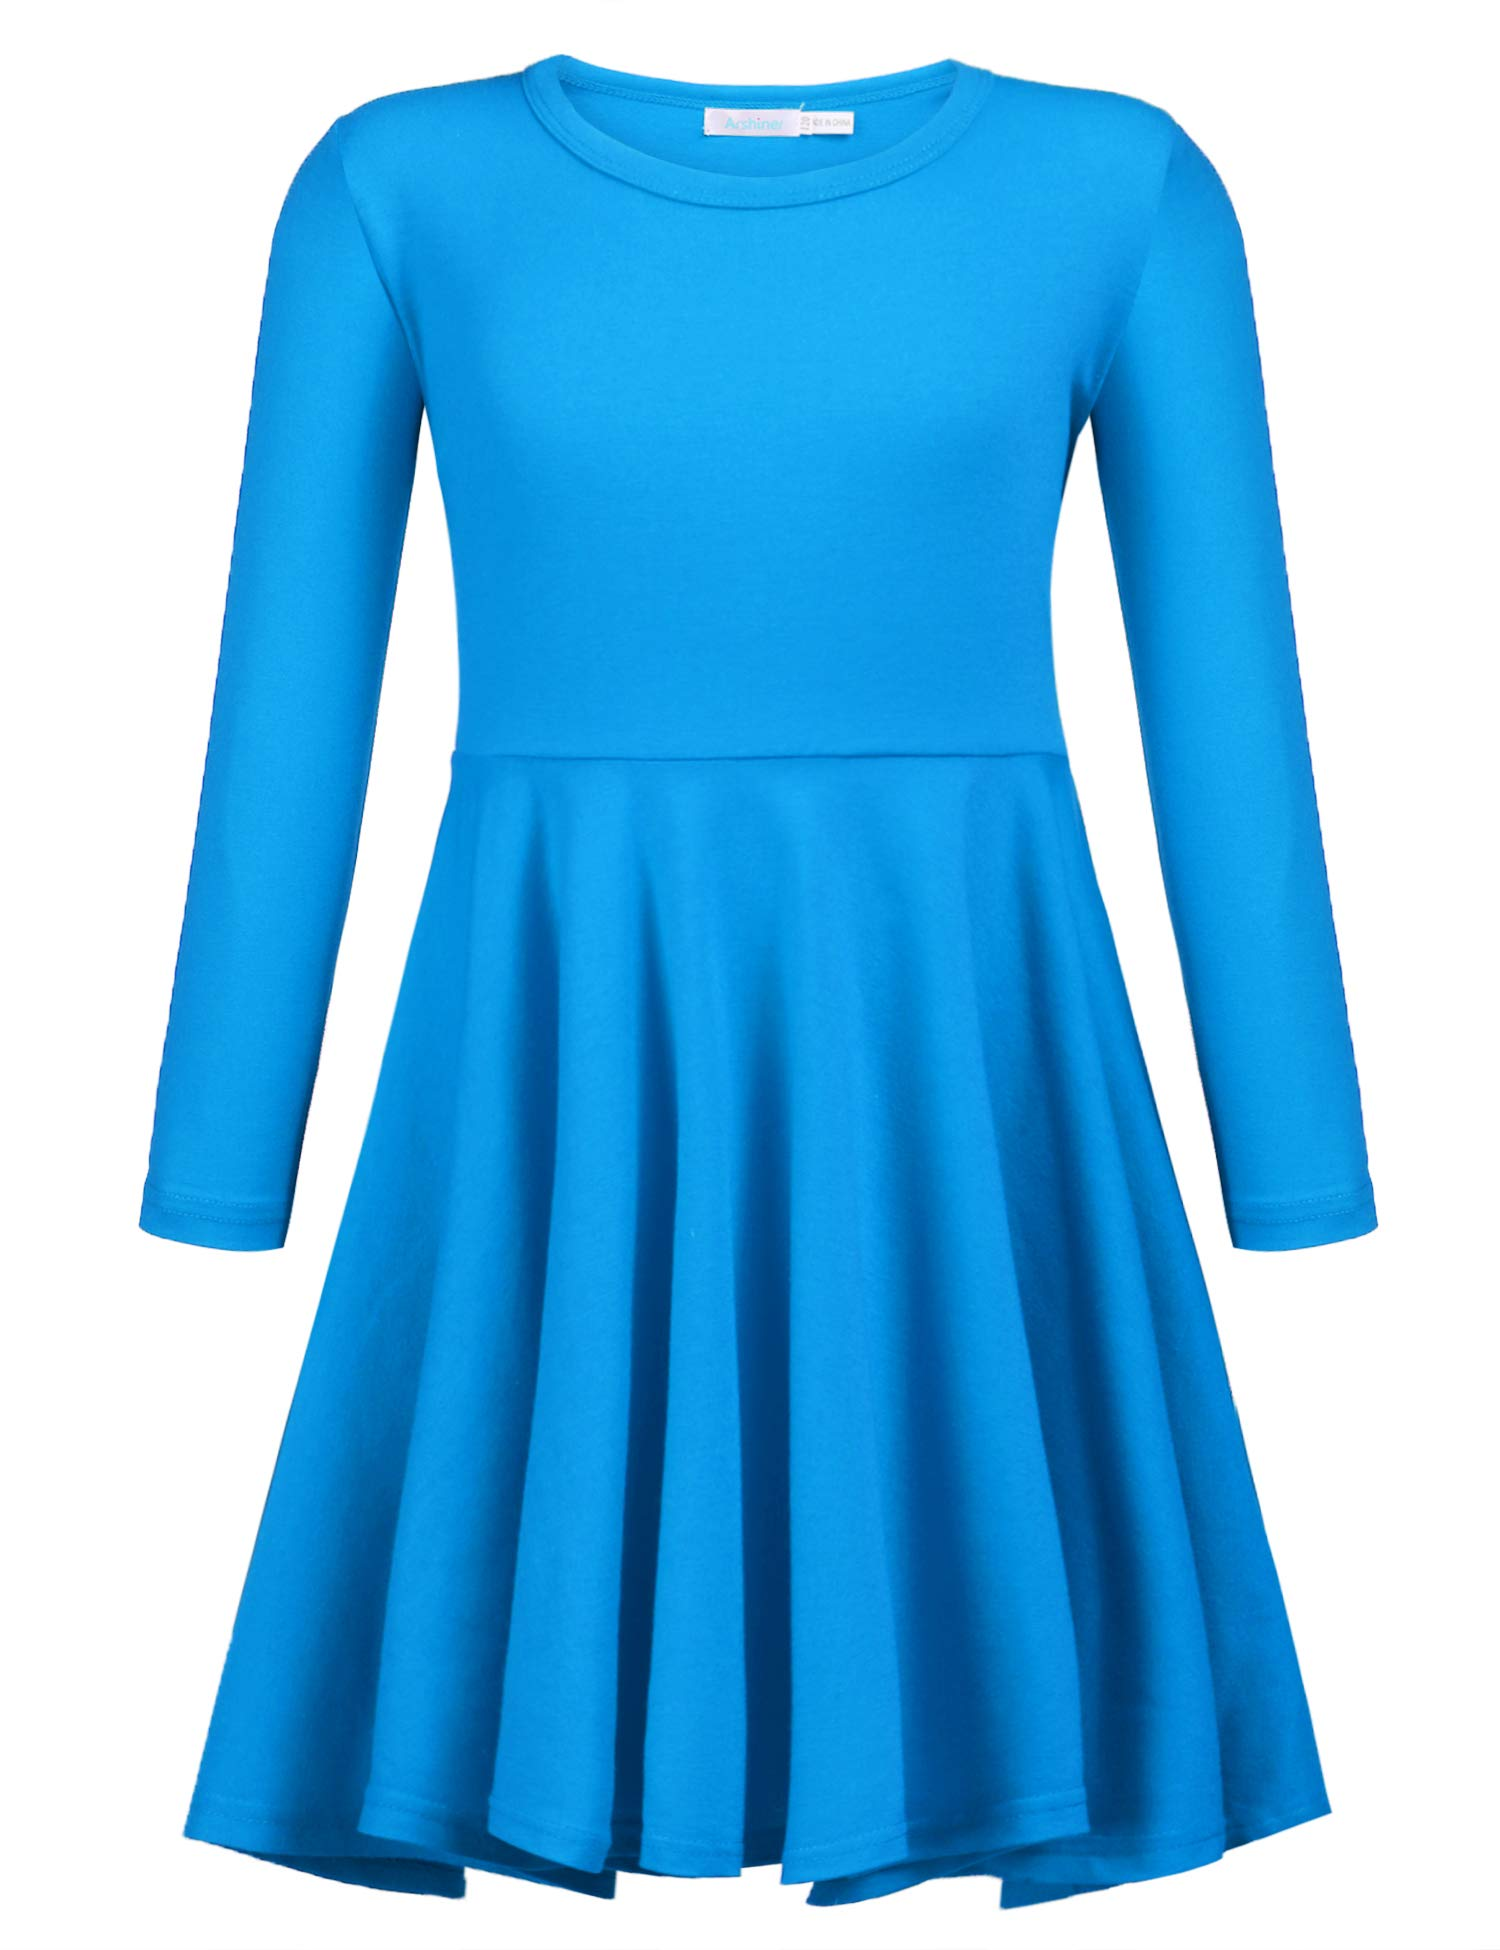 Arshiner Girls' Cotton Long Sleeve Twirly Skater Party Dress,Dark Blue,80(Age for 3-4 Y)